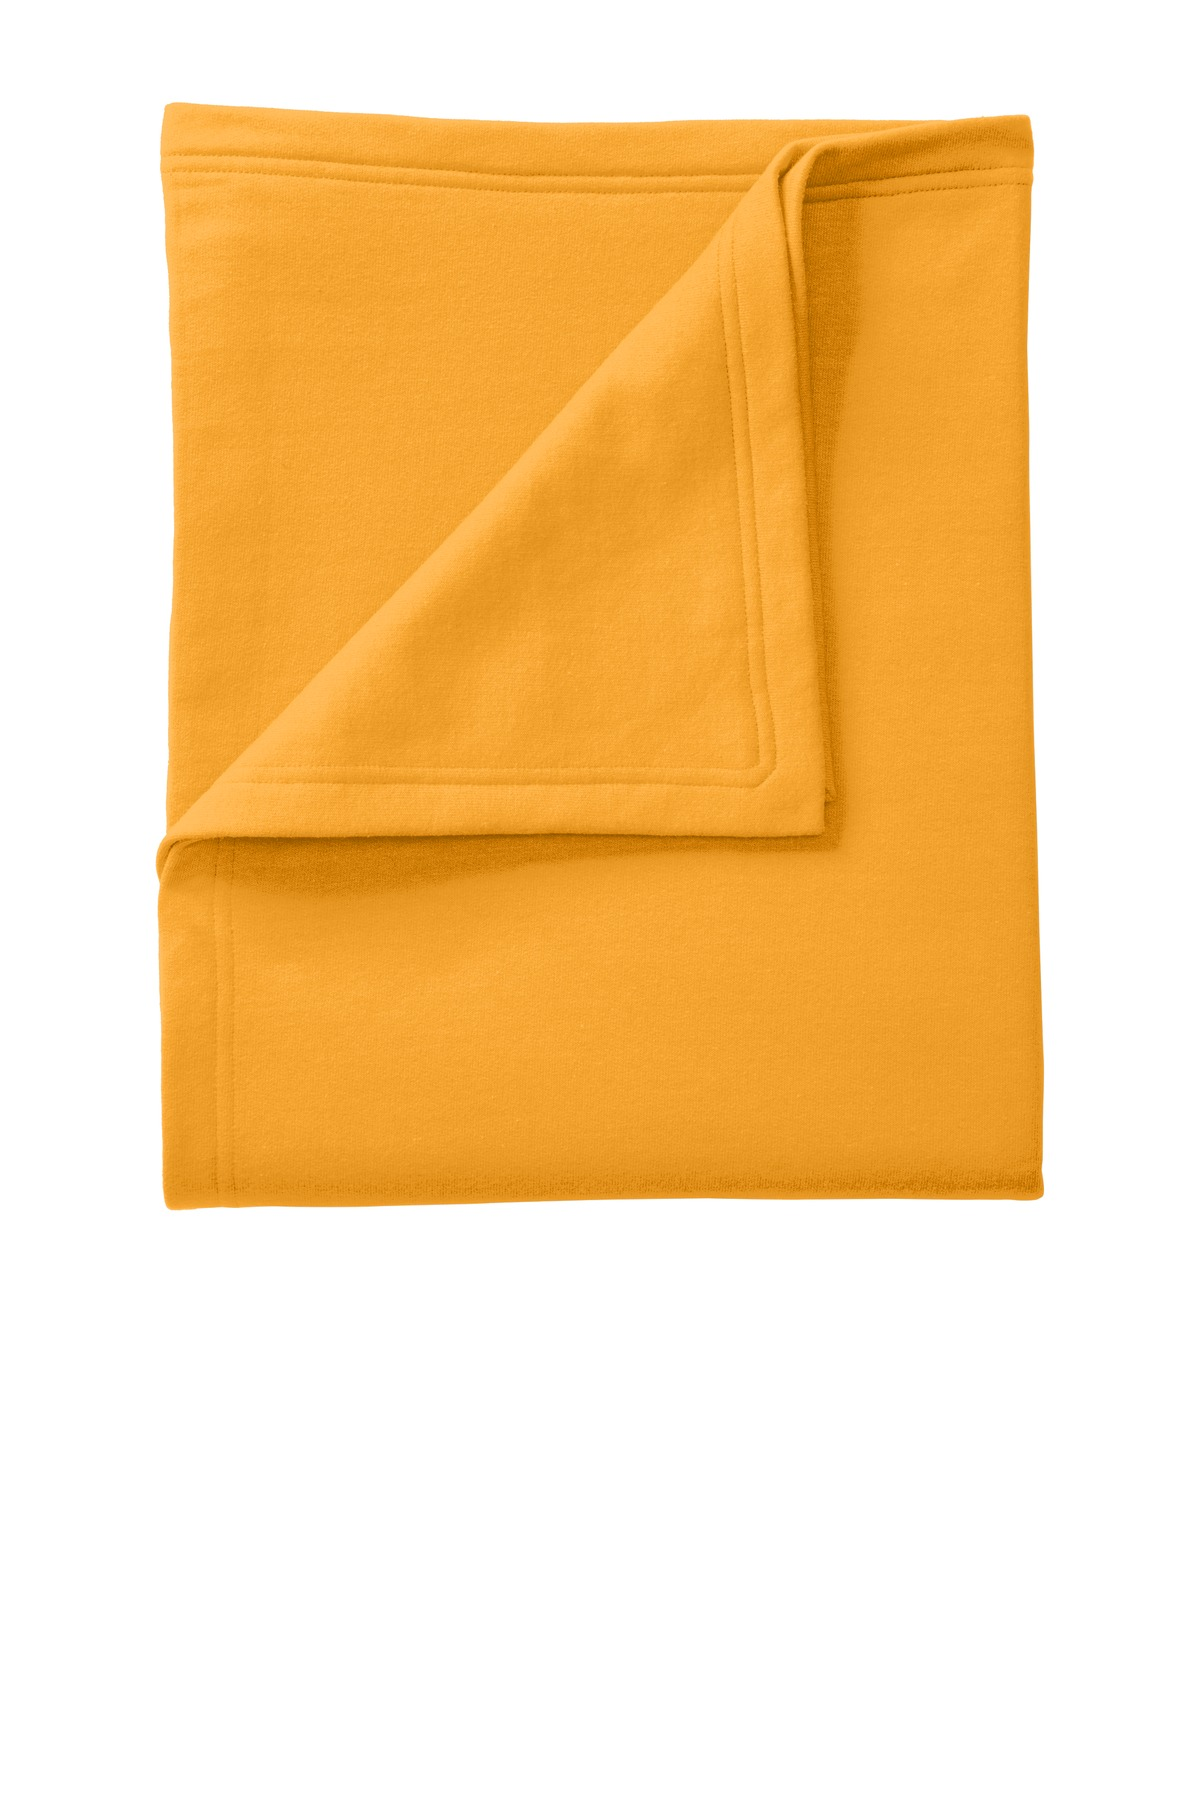 Port & Company ®  Core Fleece Sweatshirt Blanket. BP78 - Gold